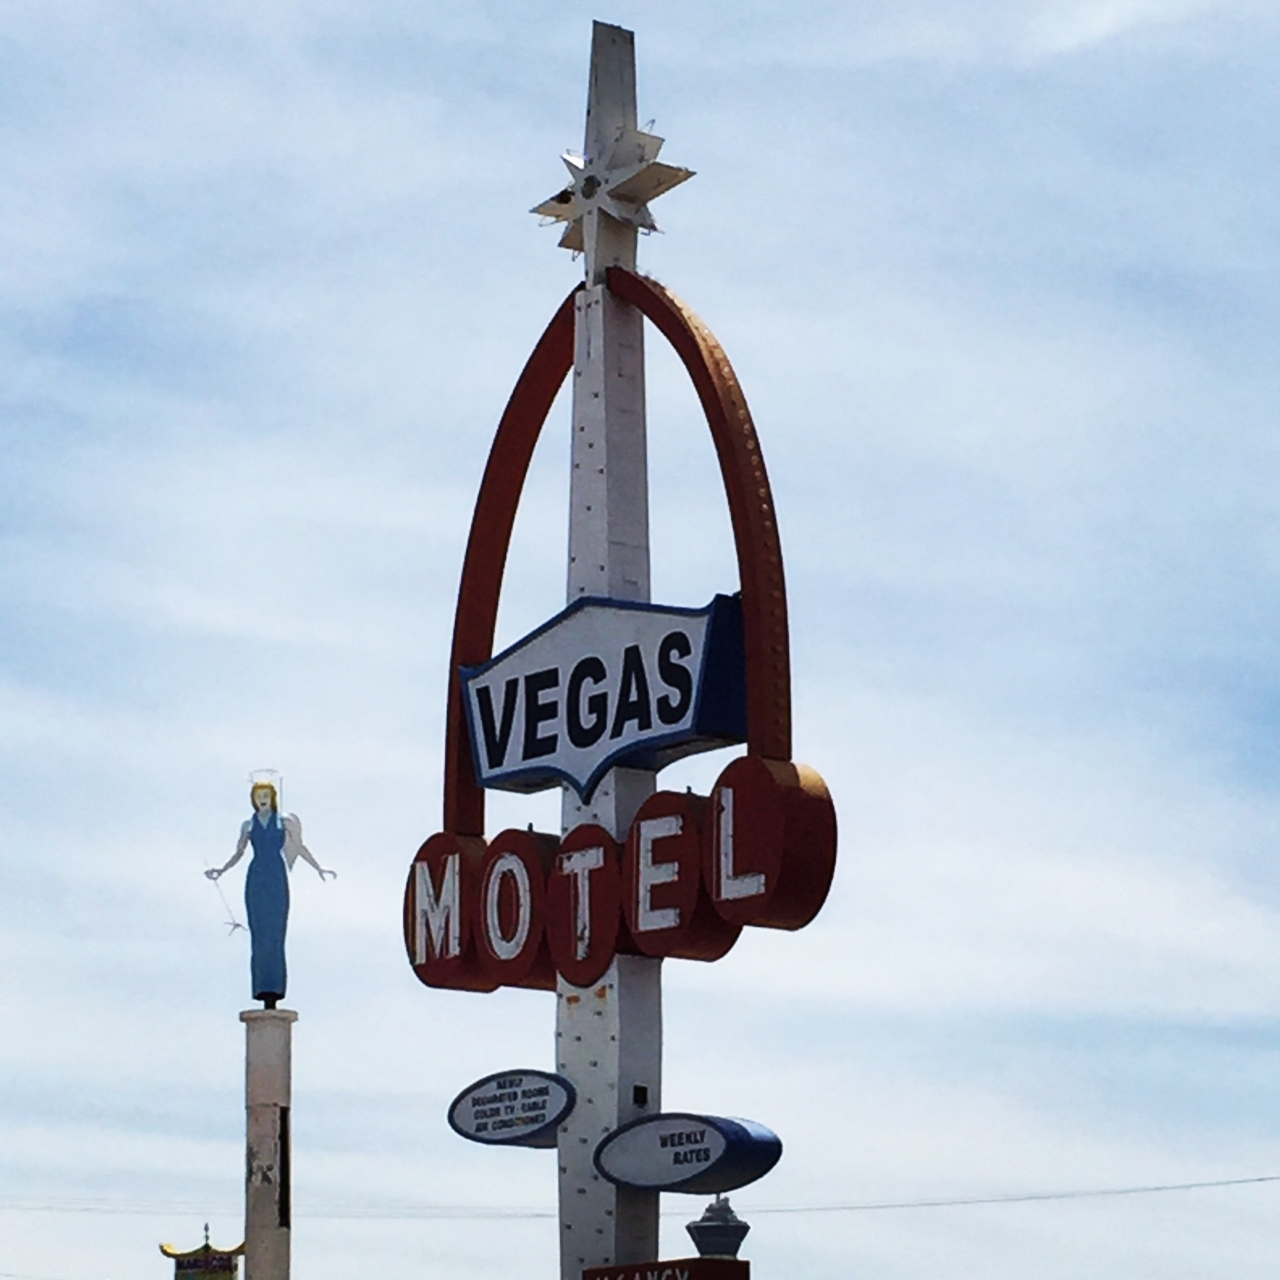 The Blue Angel and Vegas Motel